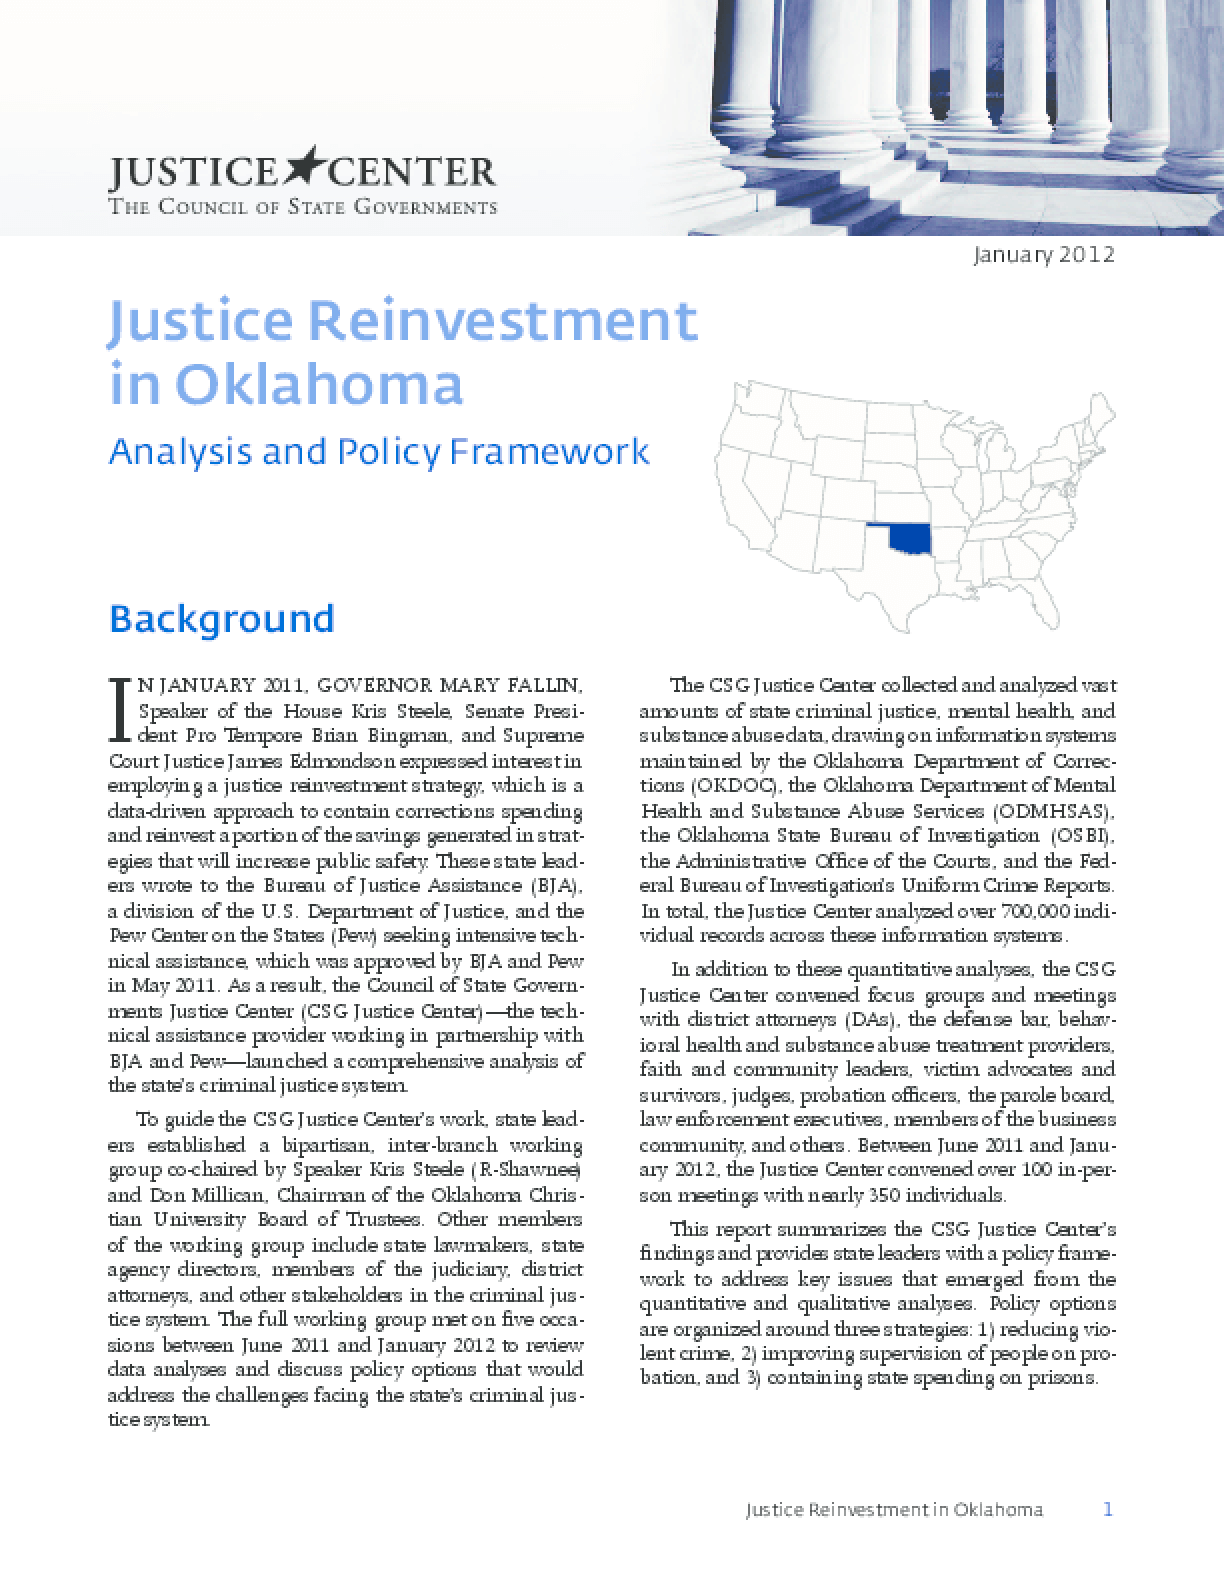 Justice Reinvestment in Oklahoma: Analysis and Policy Framework